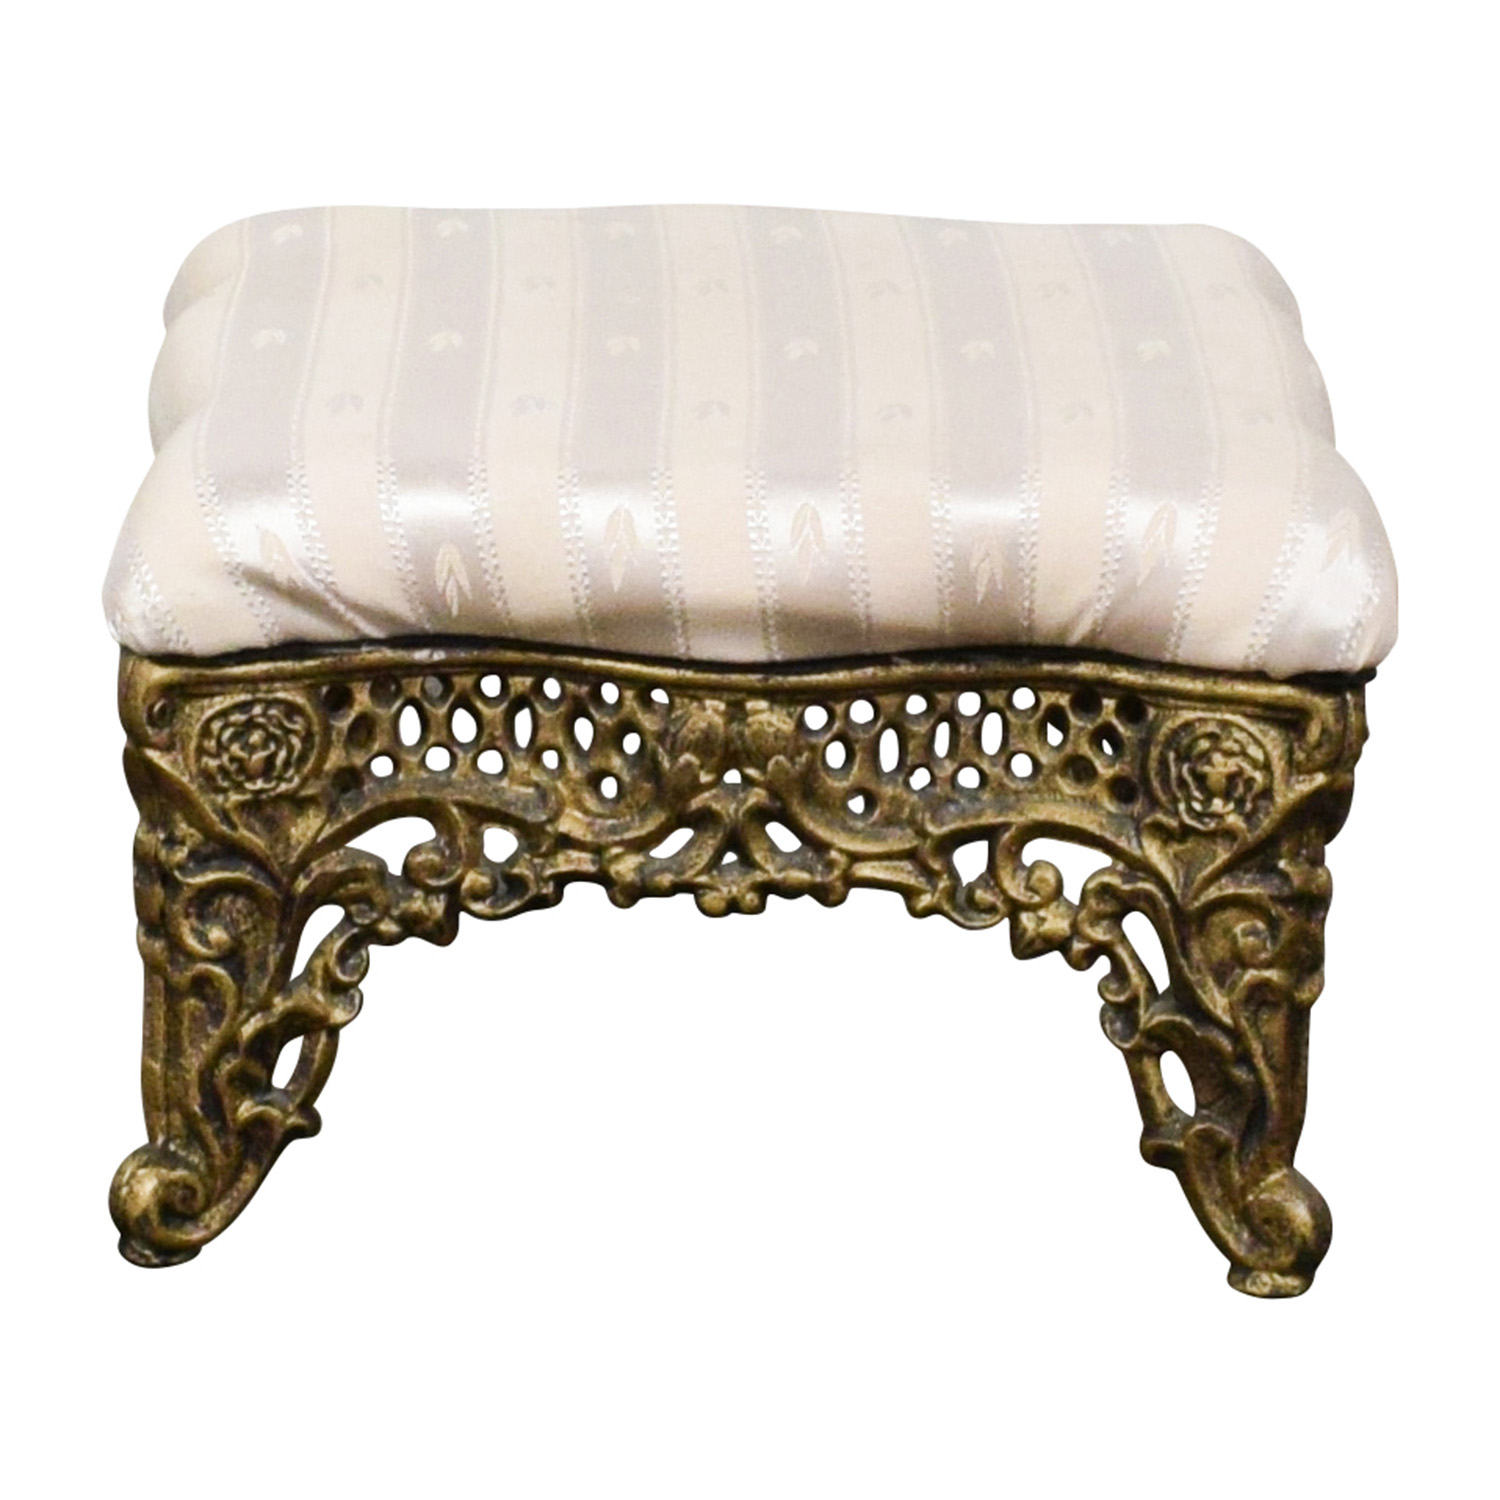 Horchow Horchow Beige Foot Stool with Gold Finish nyc